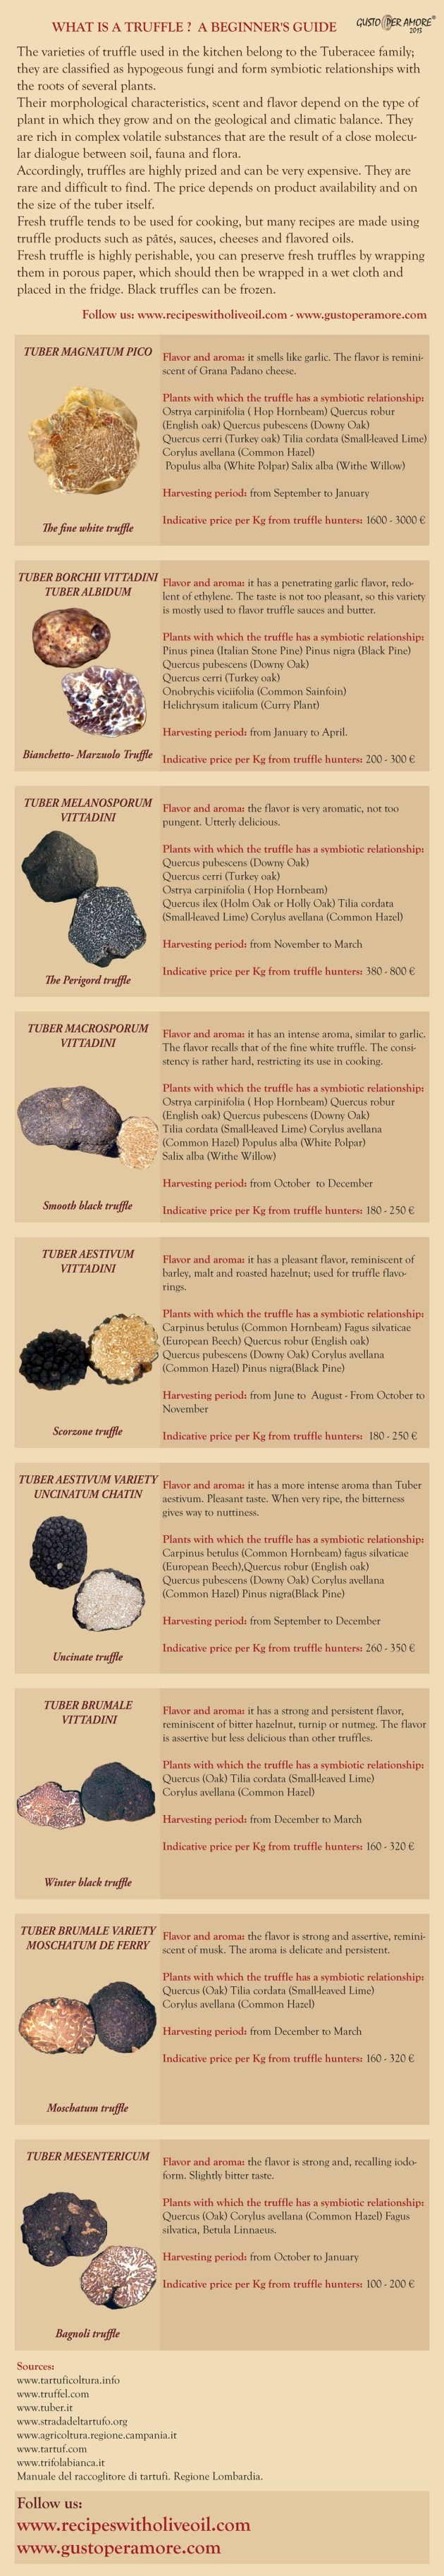 #Truffle is not very well known, so I have put together a simple guide #infographic to help you choose your favorite variety.